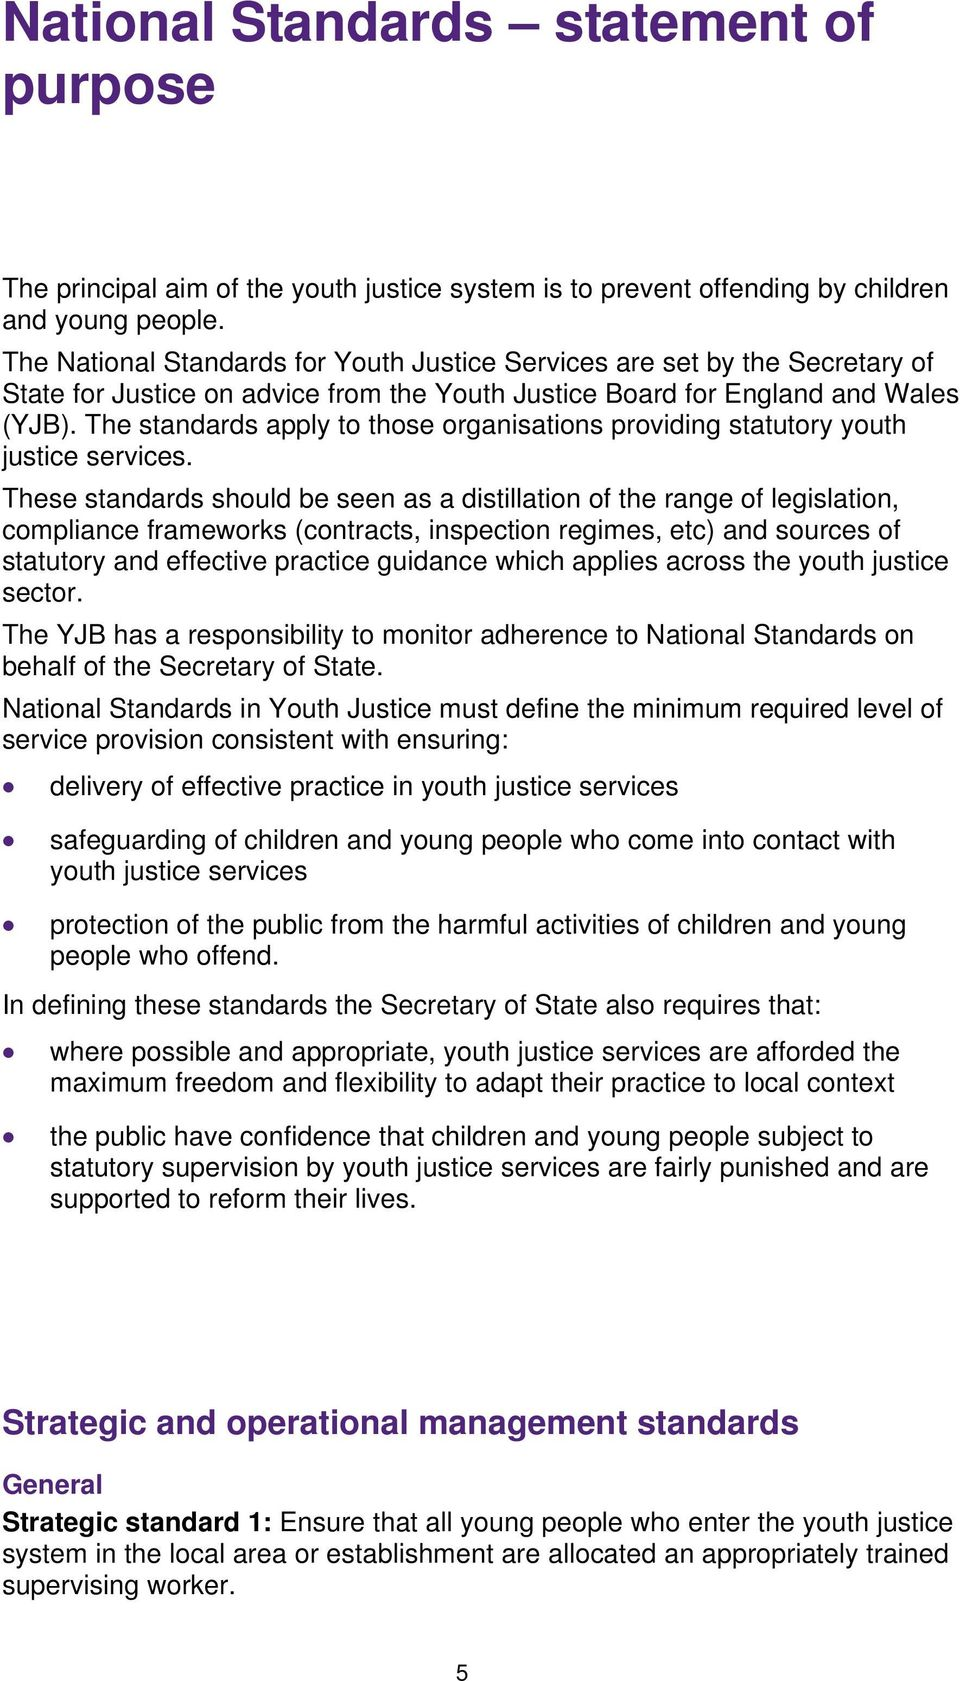 The standards apply to those organisations providing statutory youth justice services.